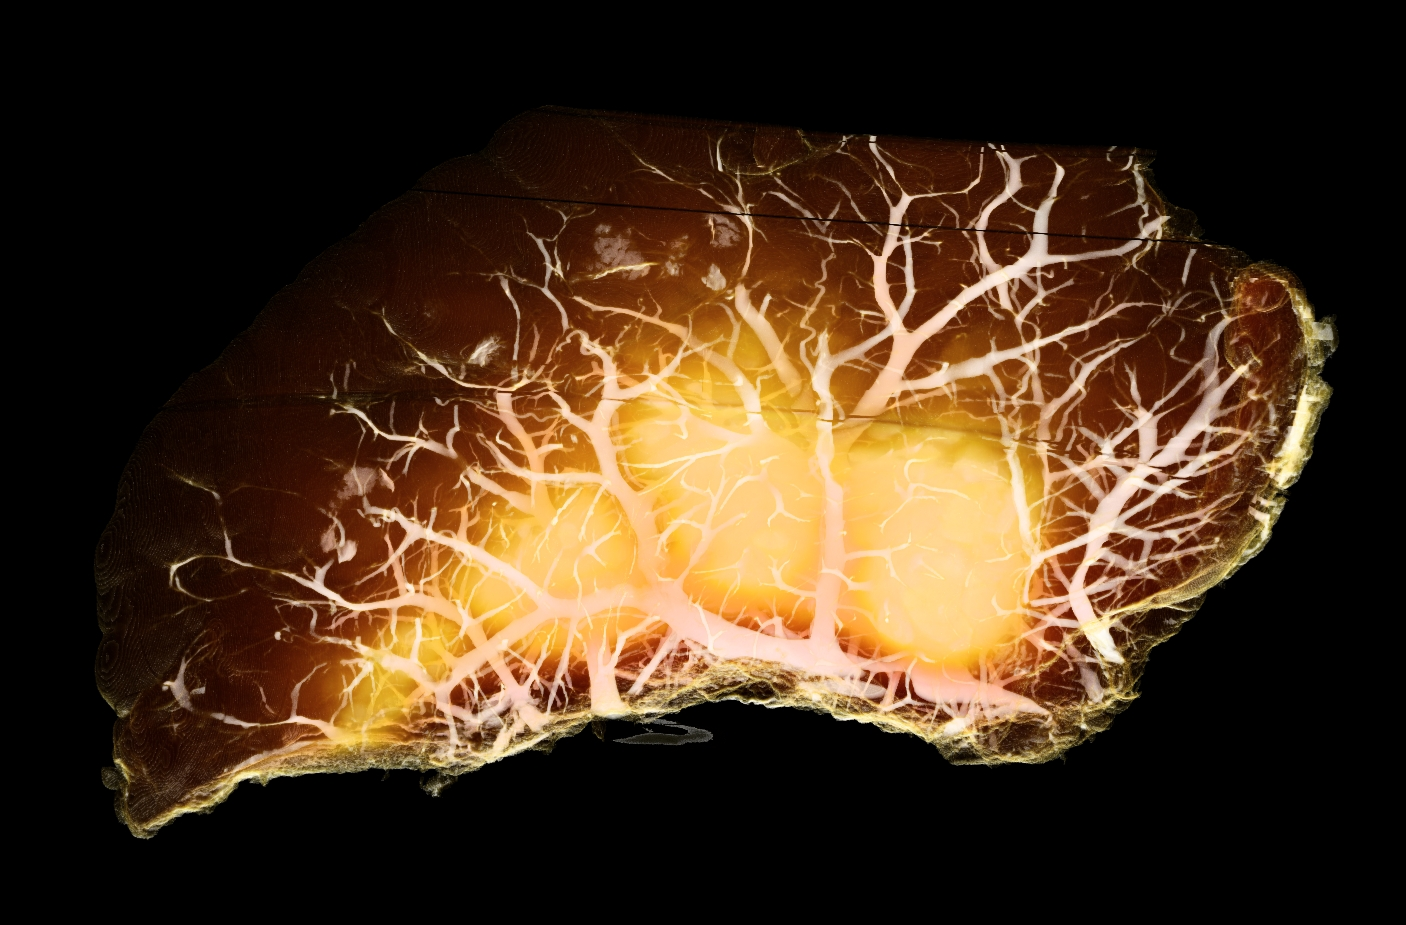 Blood vessels in the liver